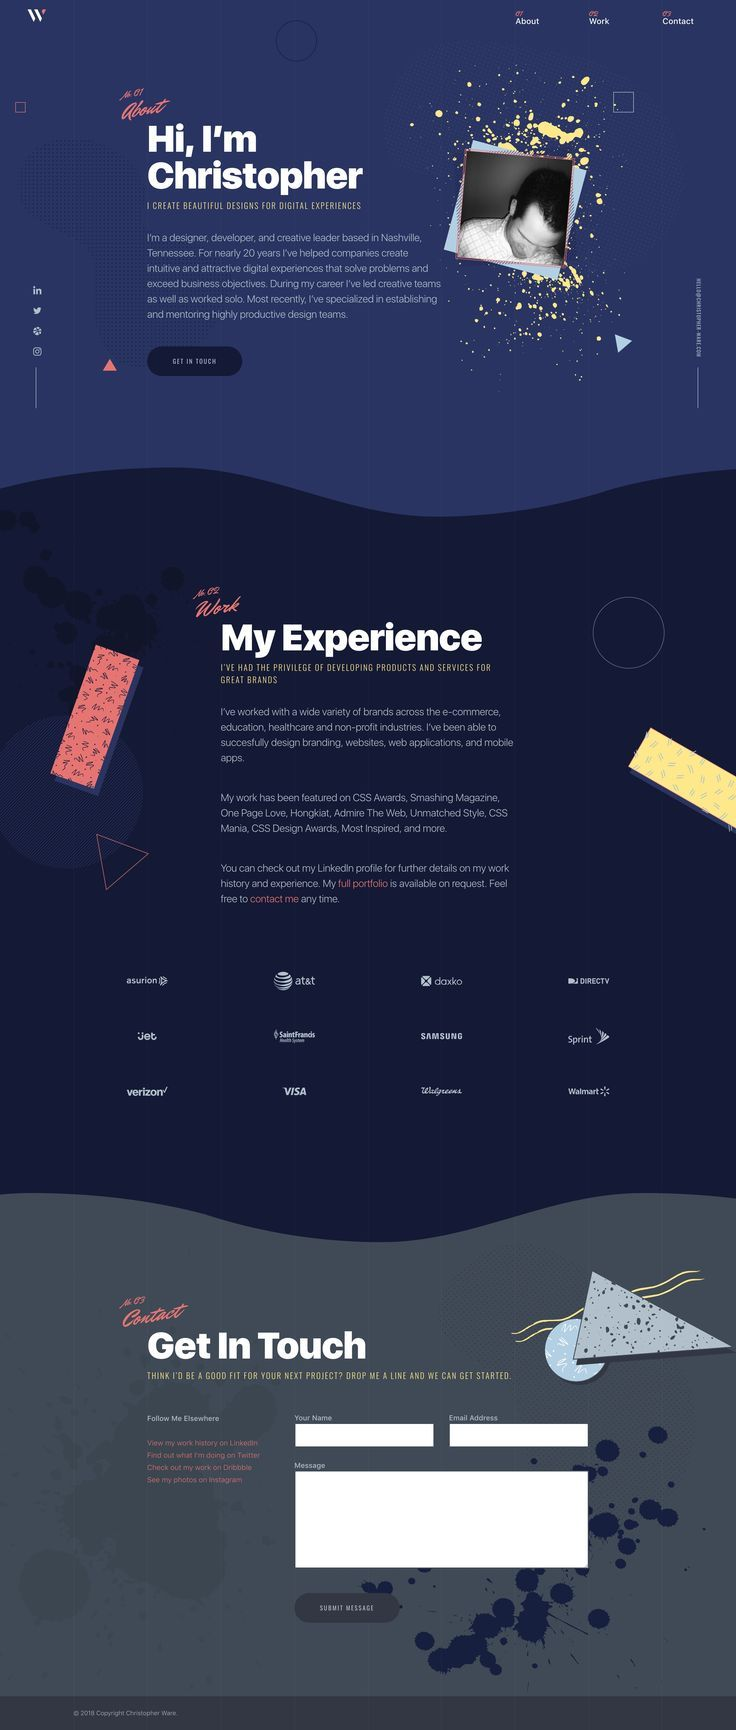 How To Design The Right Kind Of Web Design Portfolio For Your Business Web Design Tips Portfolio Web Design Portfolio Website Design Web Portfolio